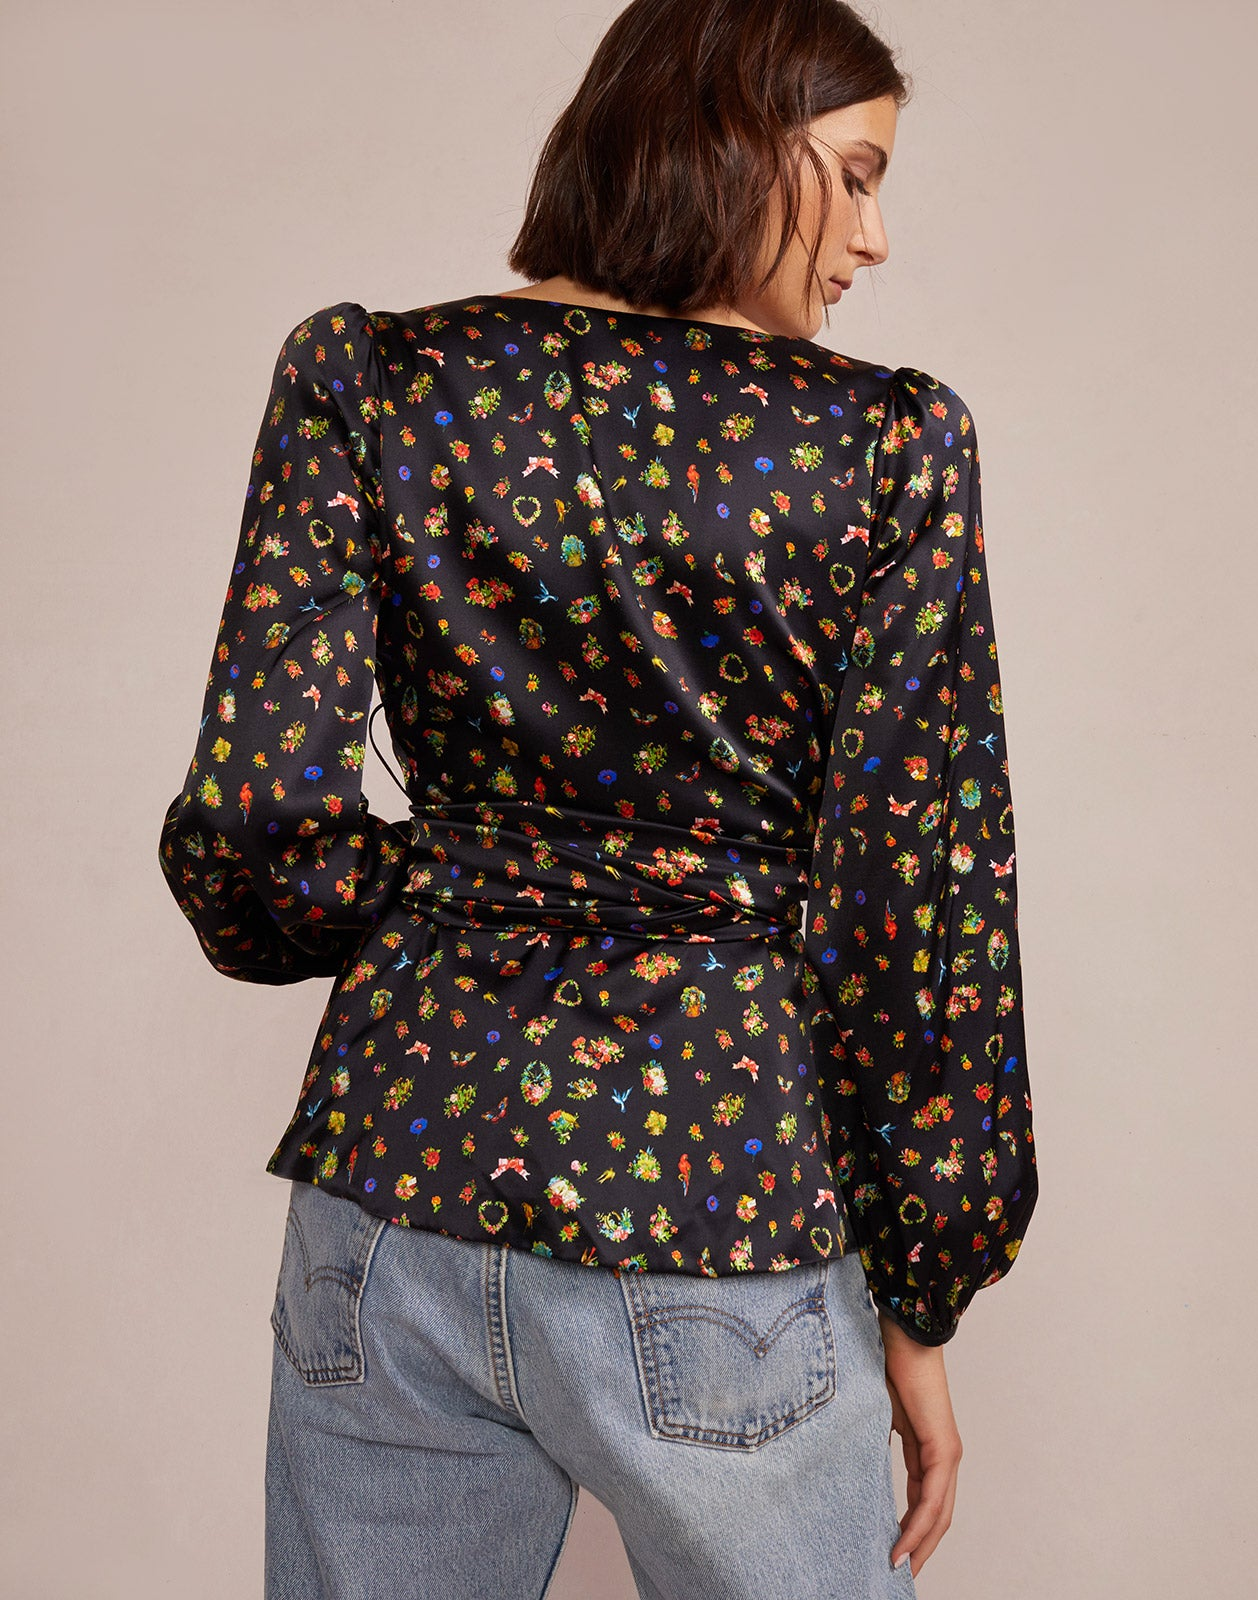 Back view of silk charmeuse wrap top